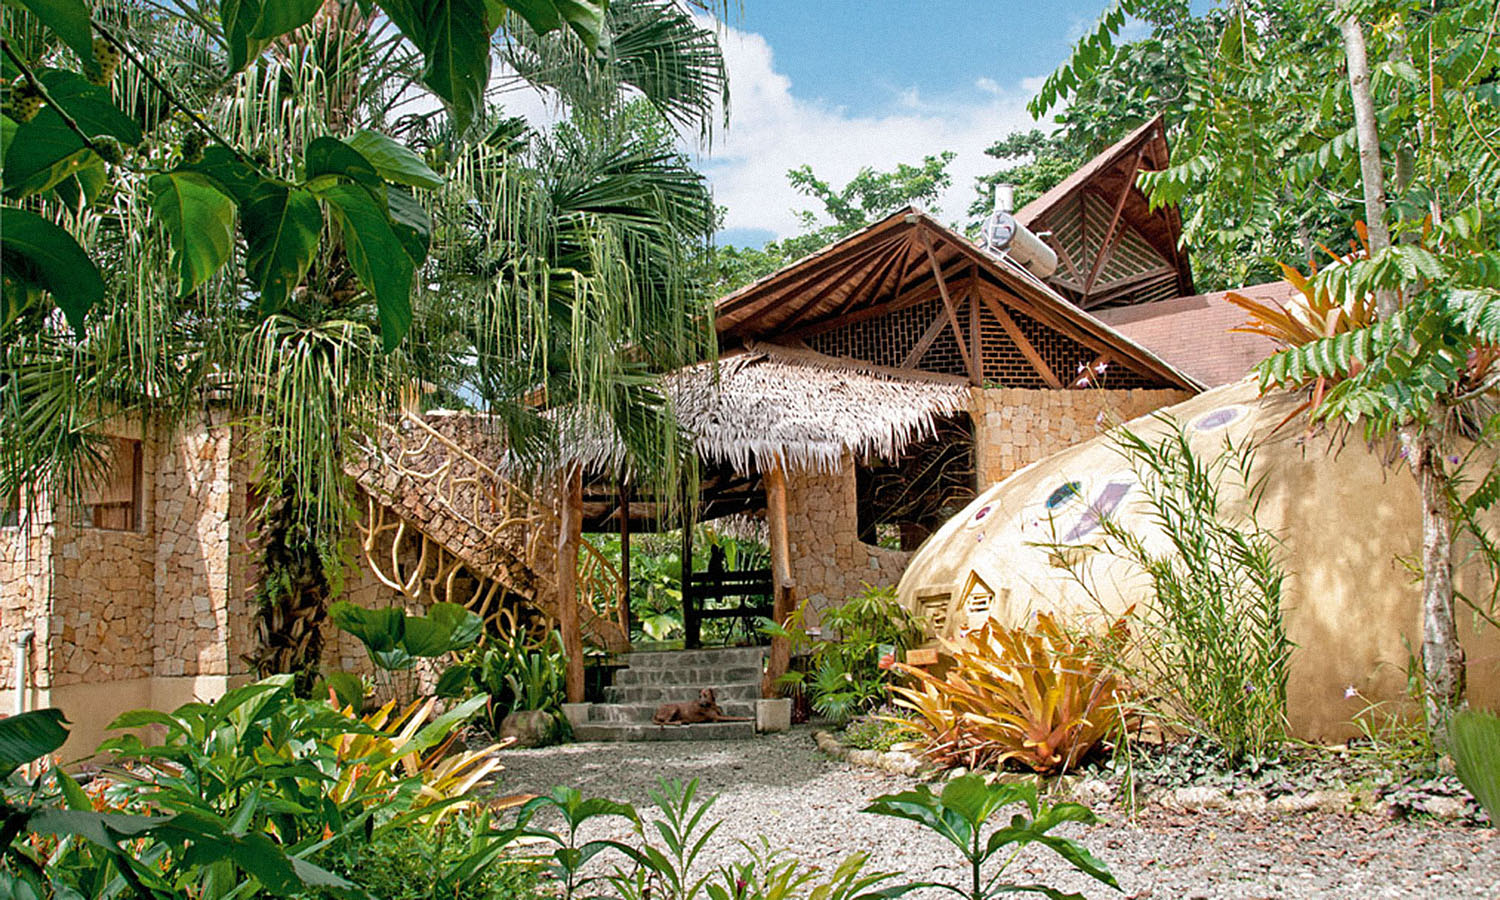 Tree house lodge get lost magazine for Costa rica tree house rental